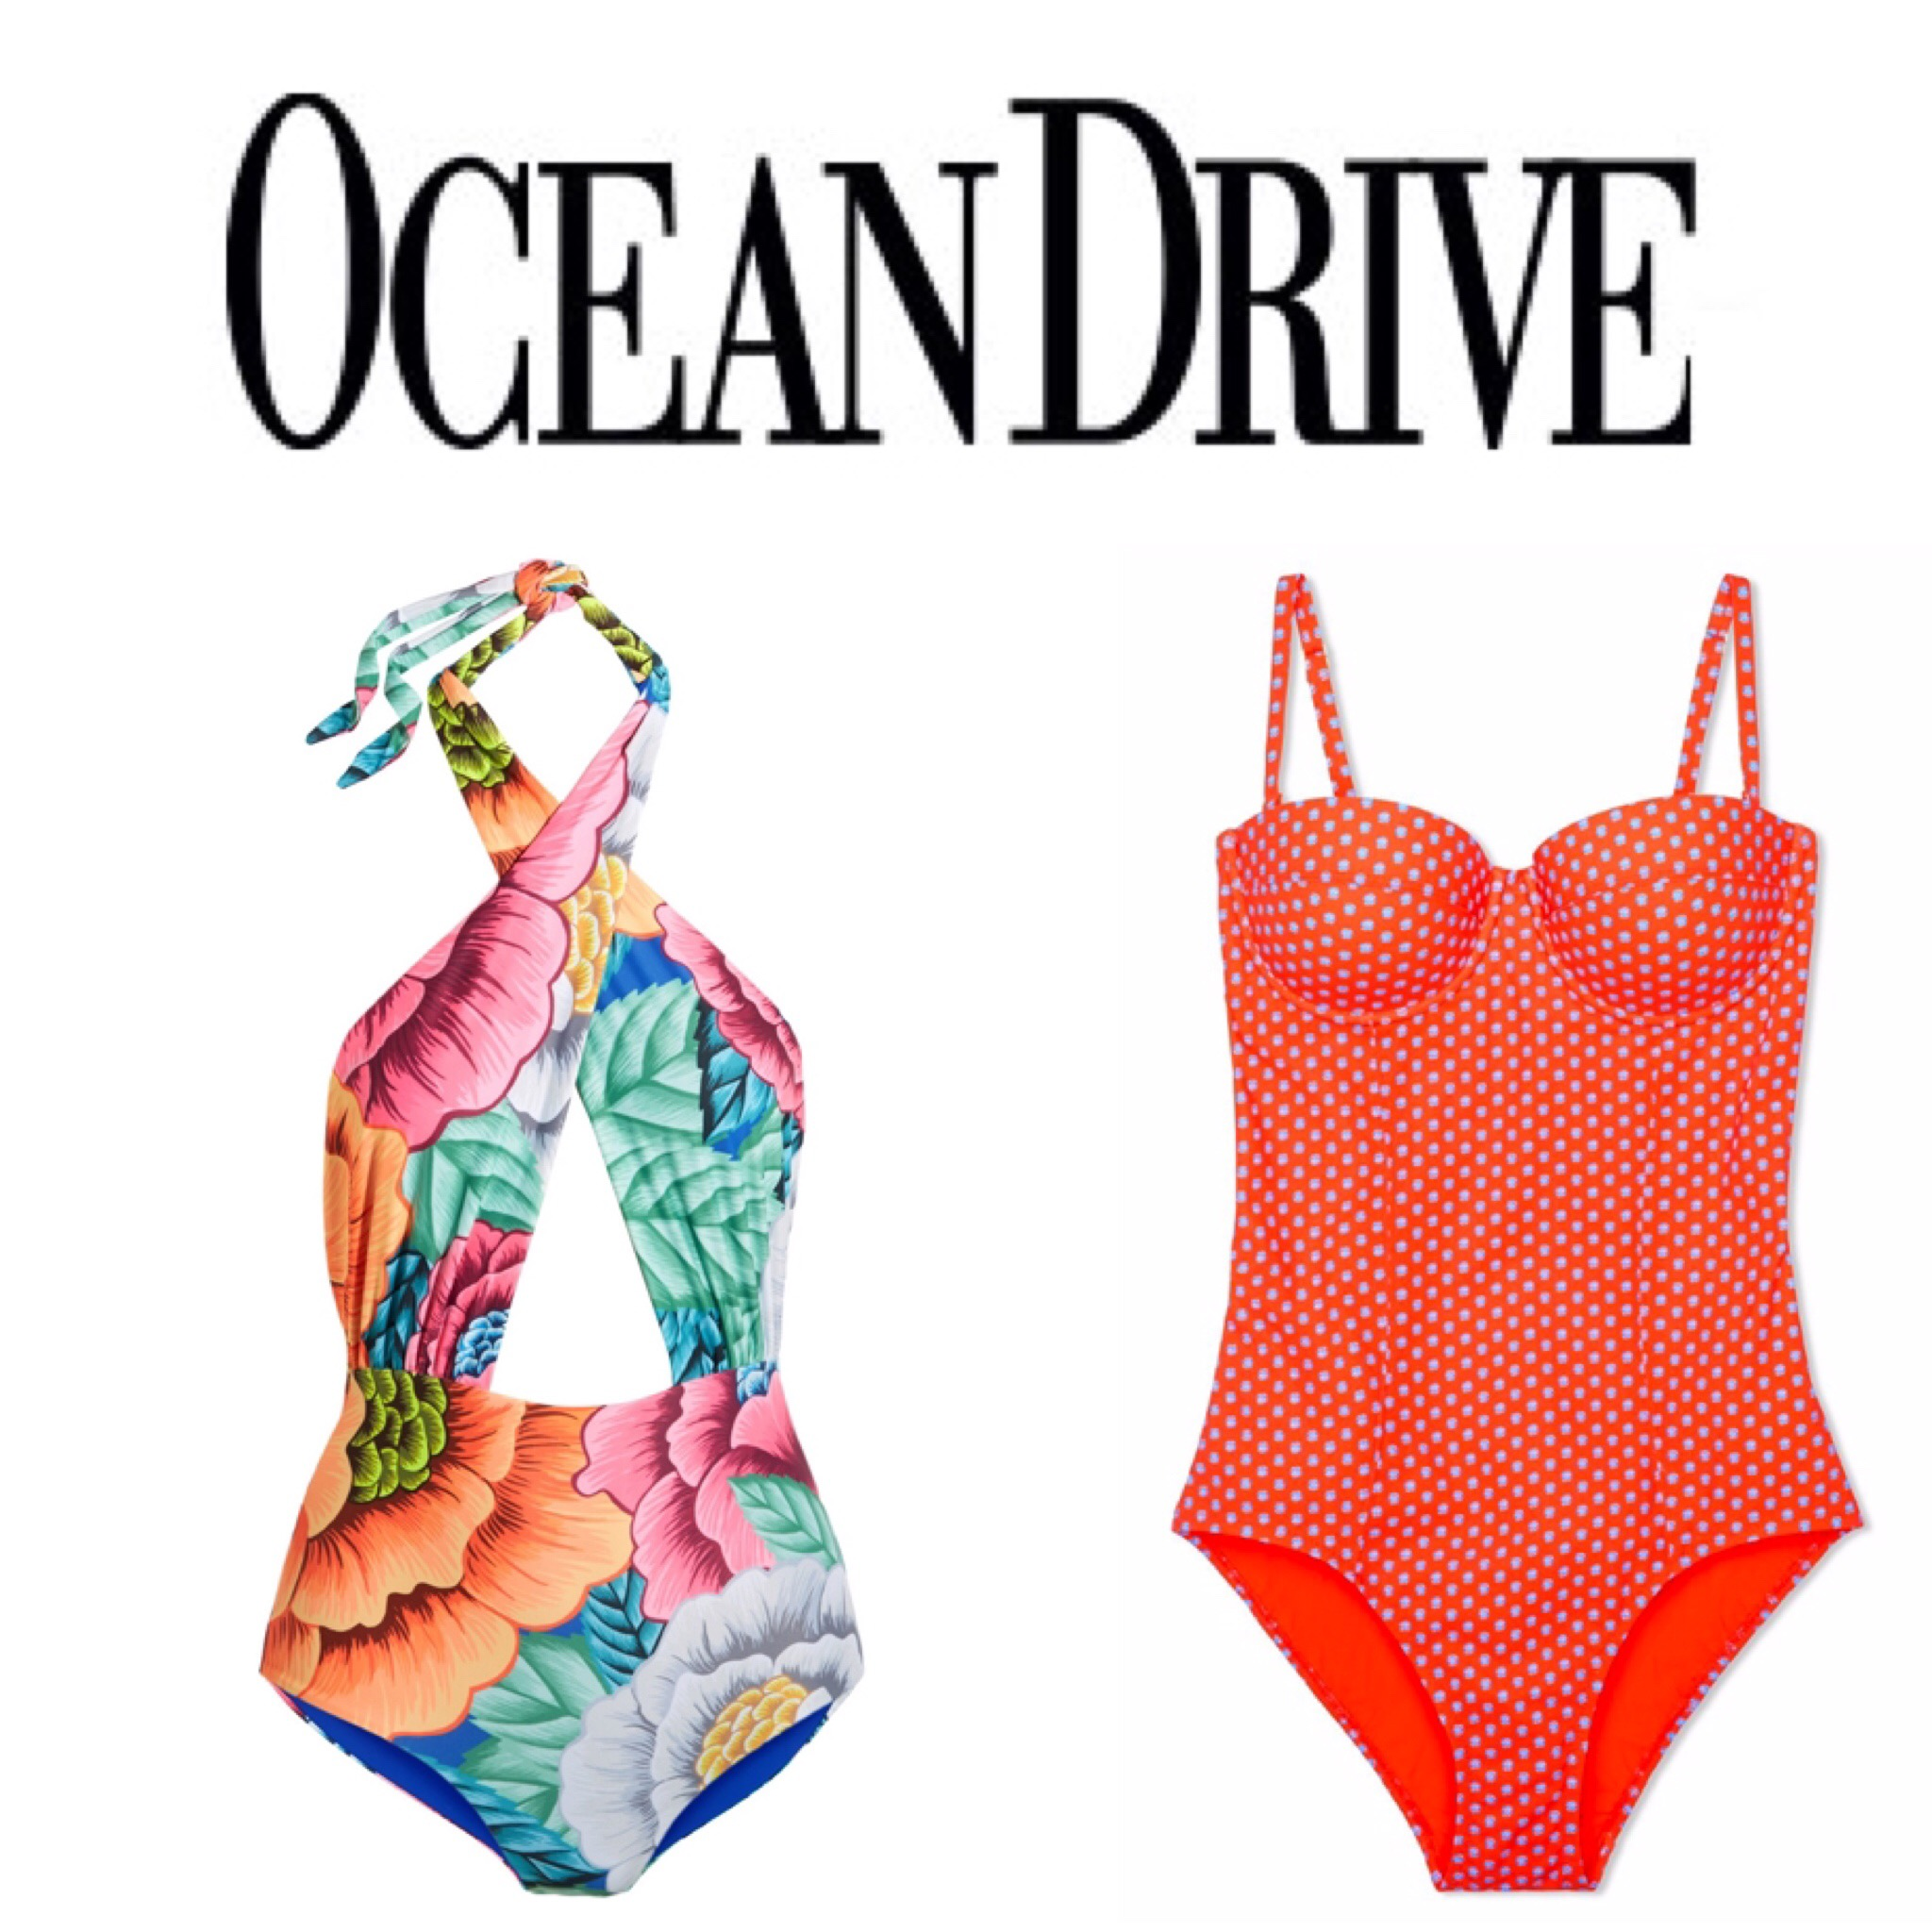 https://oceandrive.com/best-bathing-suits-to-wear-this-summer